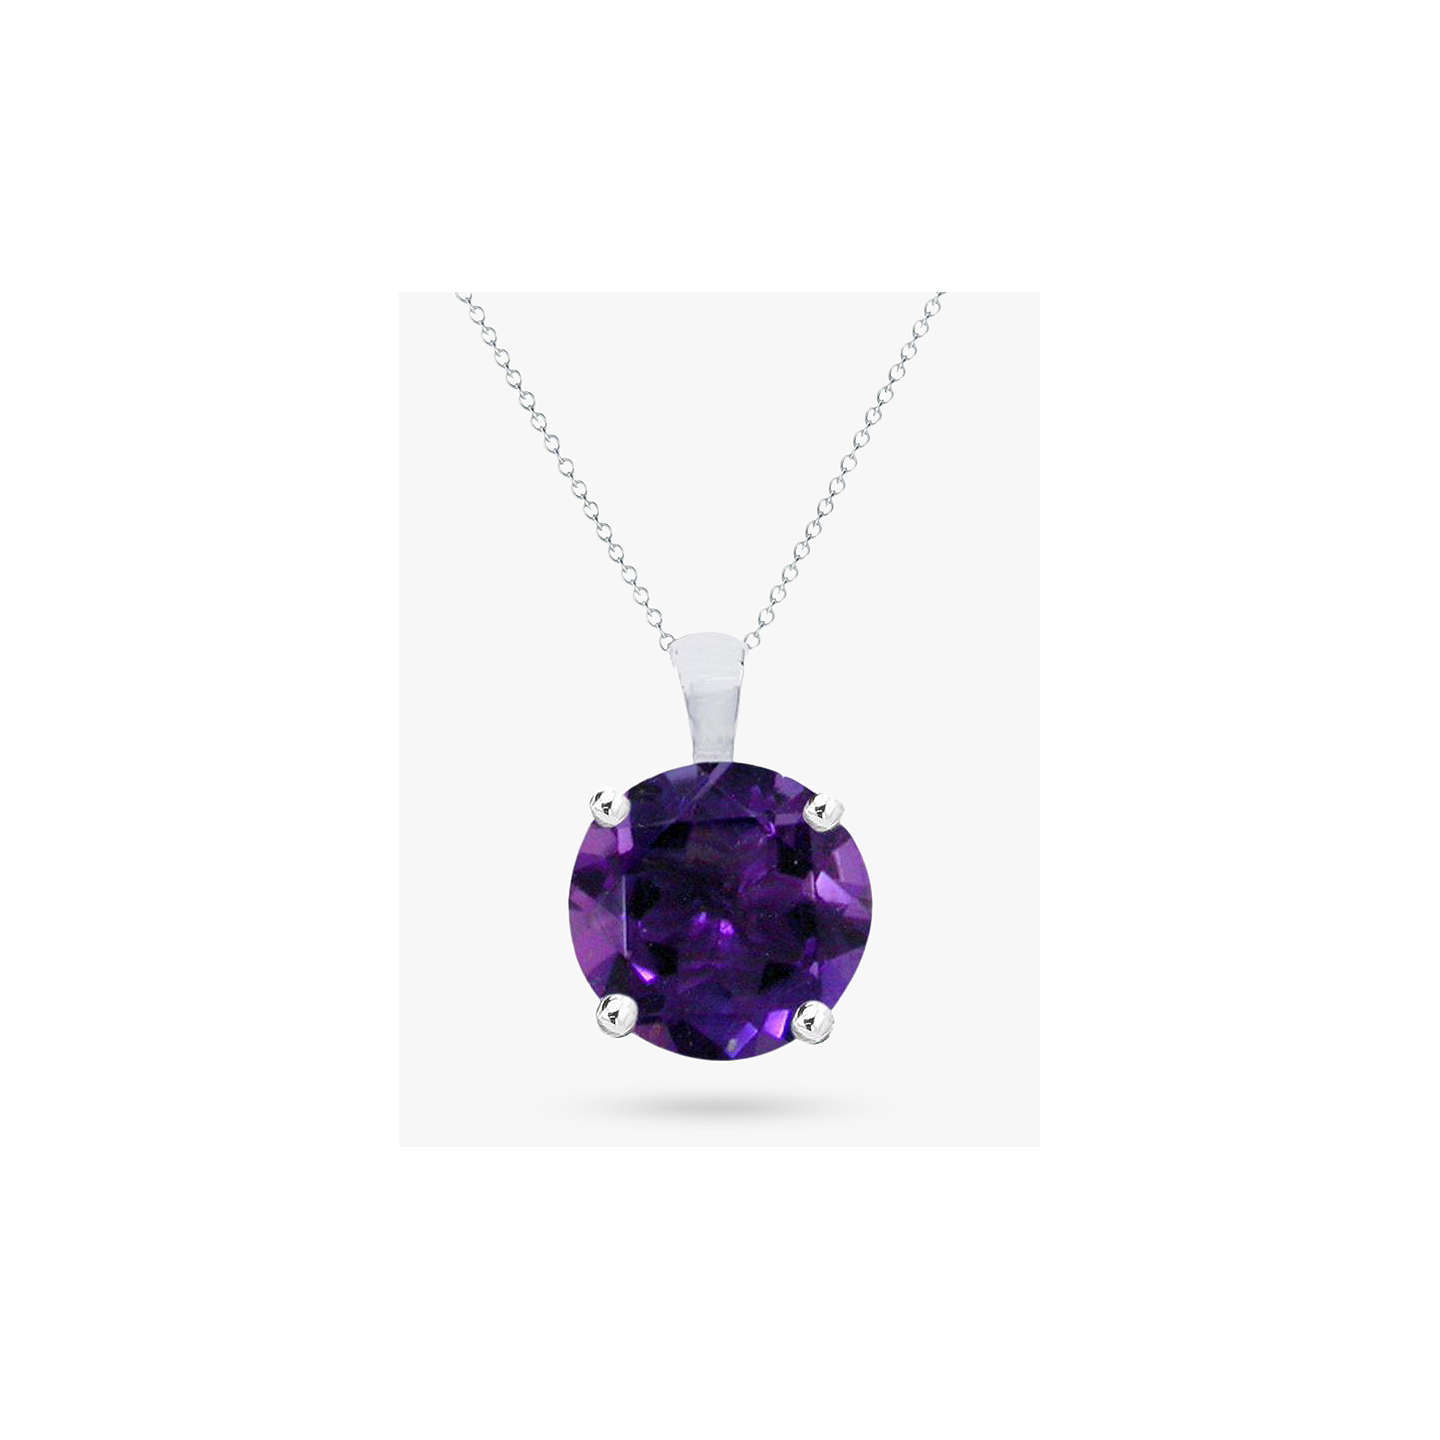 zoom destiny jewellery swarovski with buy amethyst online in necklace crystal